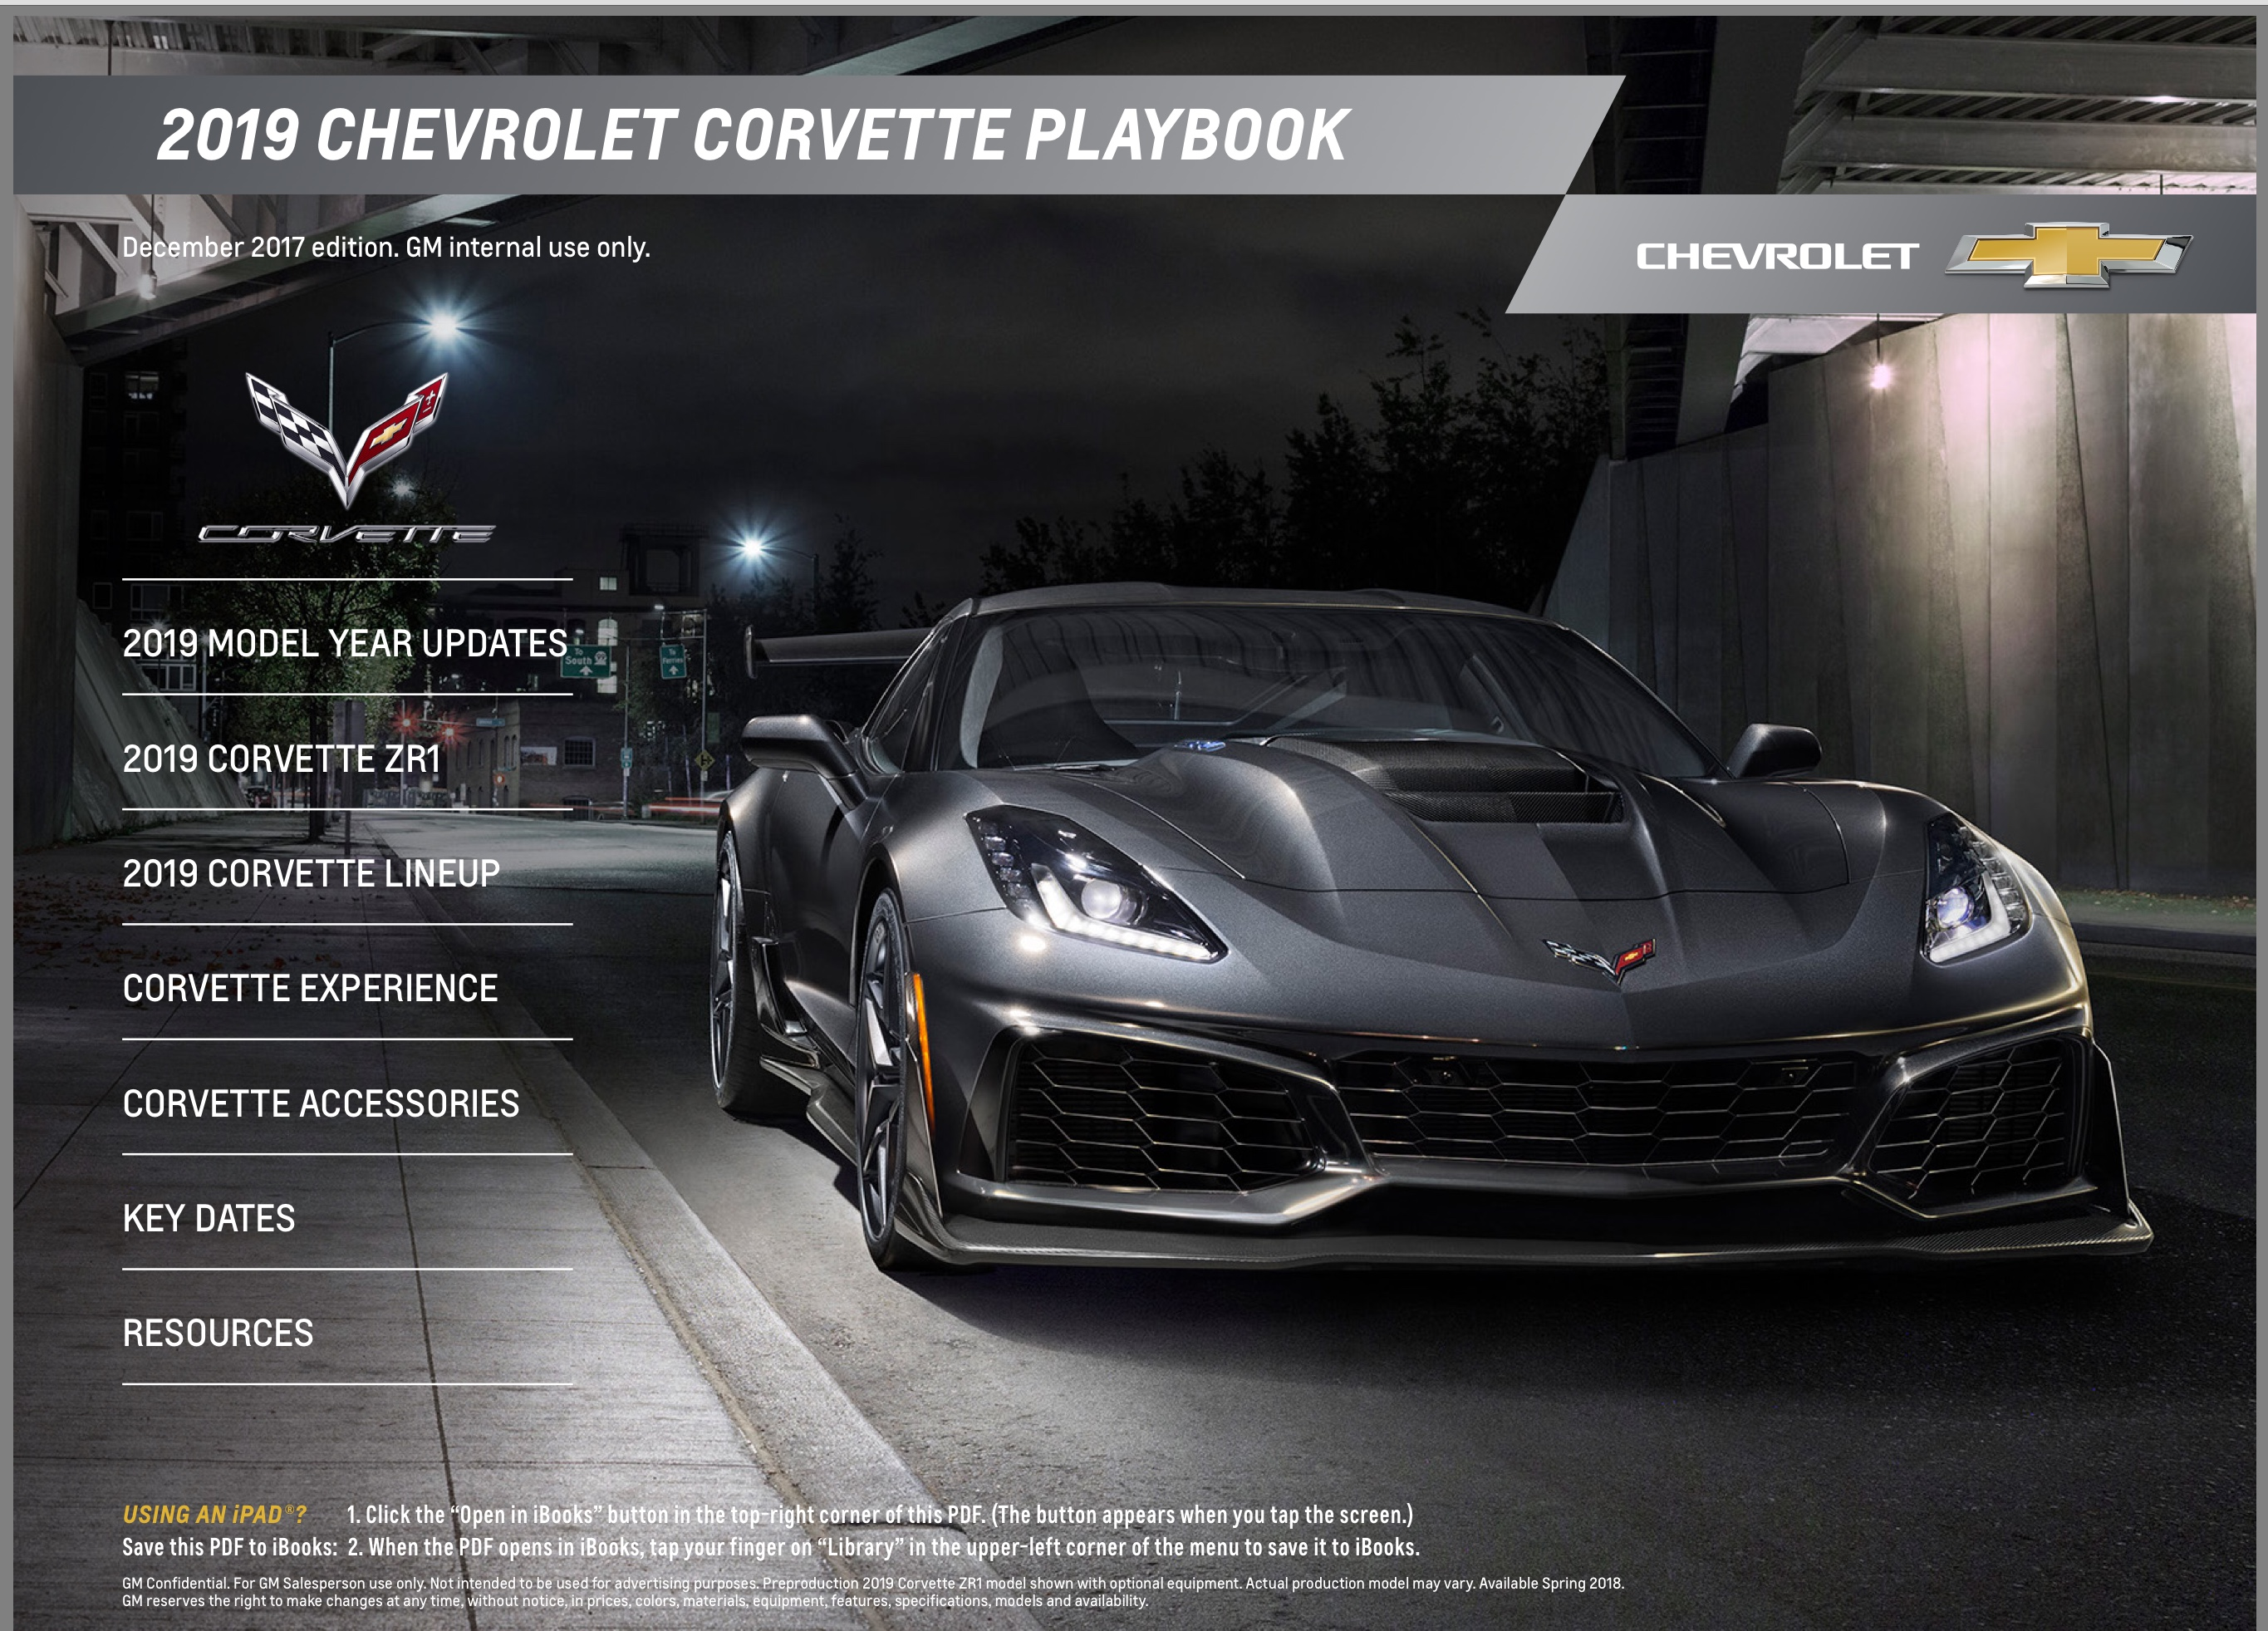 Gm 2019 Corvette Playbook